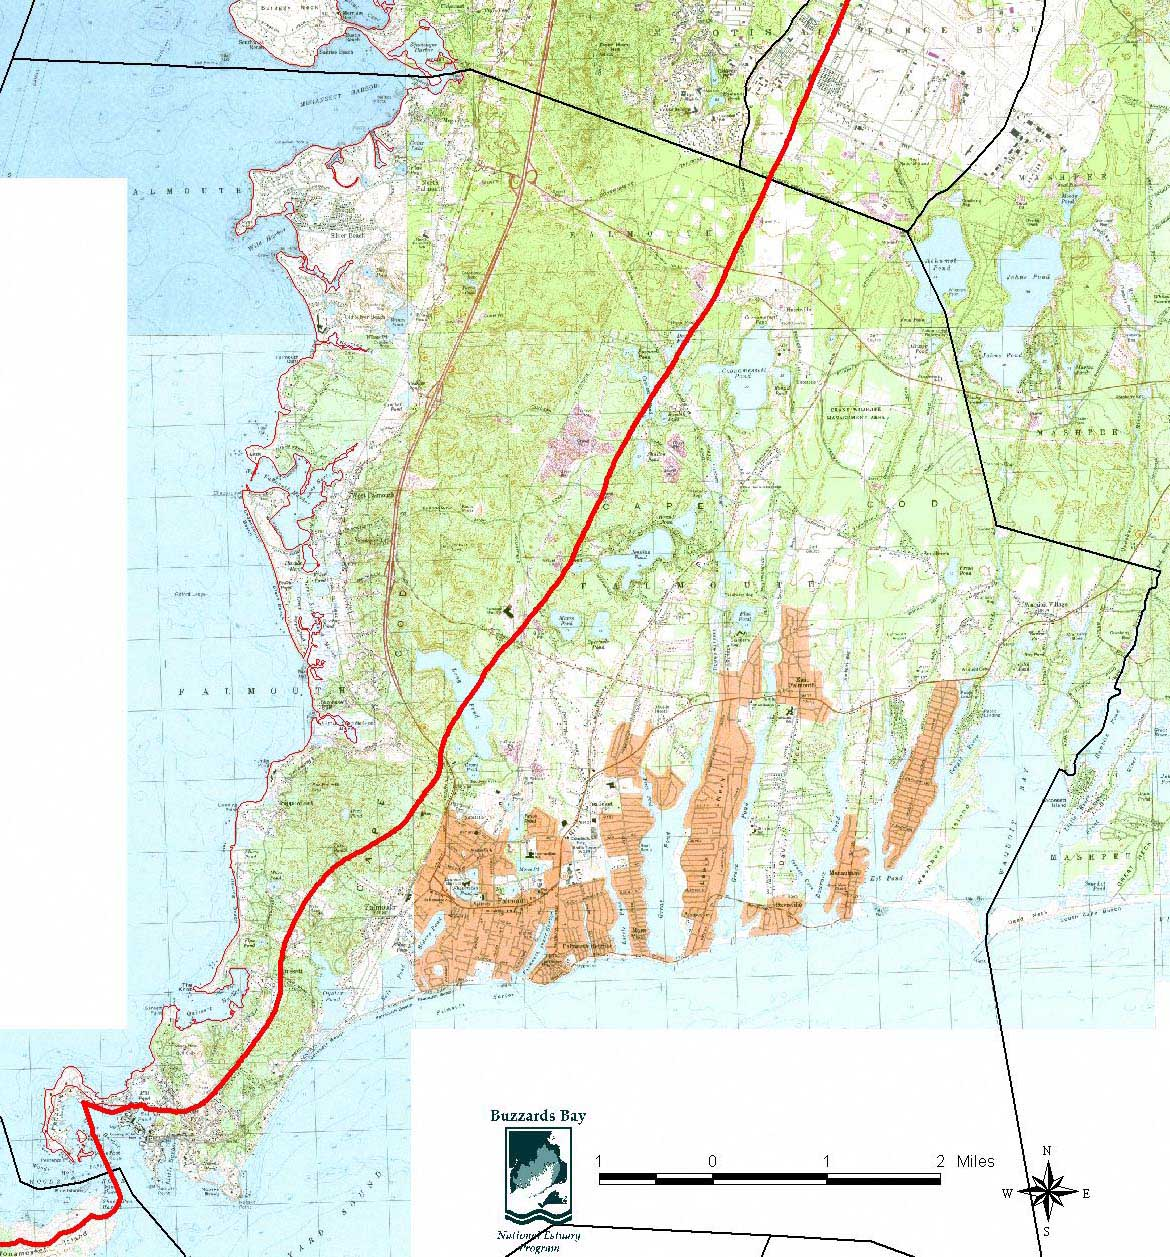 Falmouth buzzards bay national estuary program falmouth core wetlands open 150 kb size map open 750 kb size map geenschuldenfo Gallery